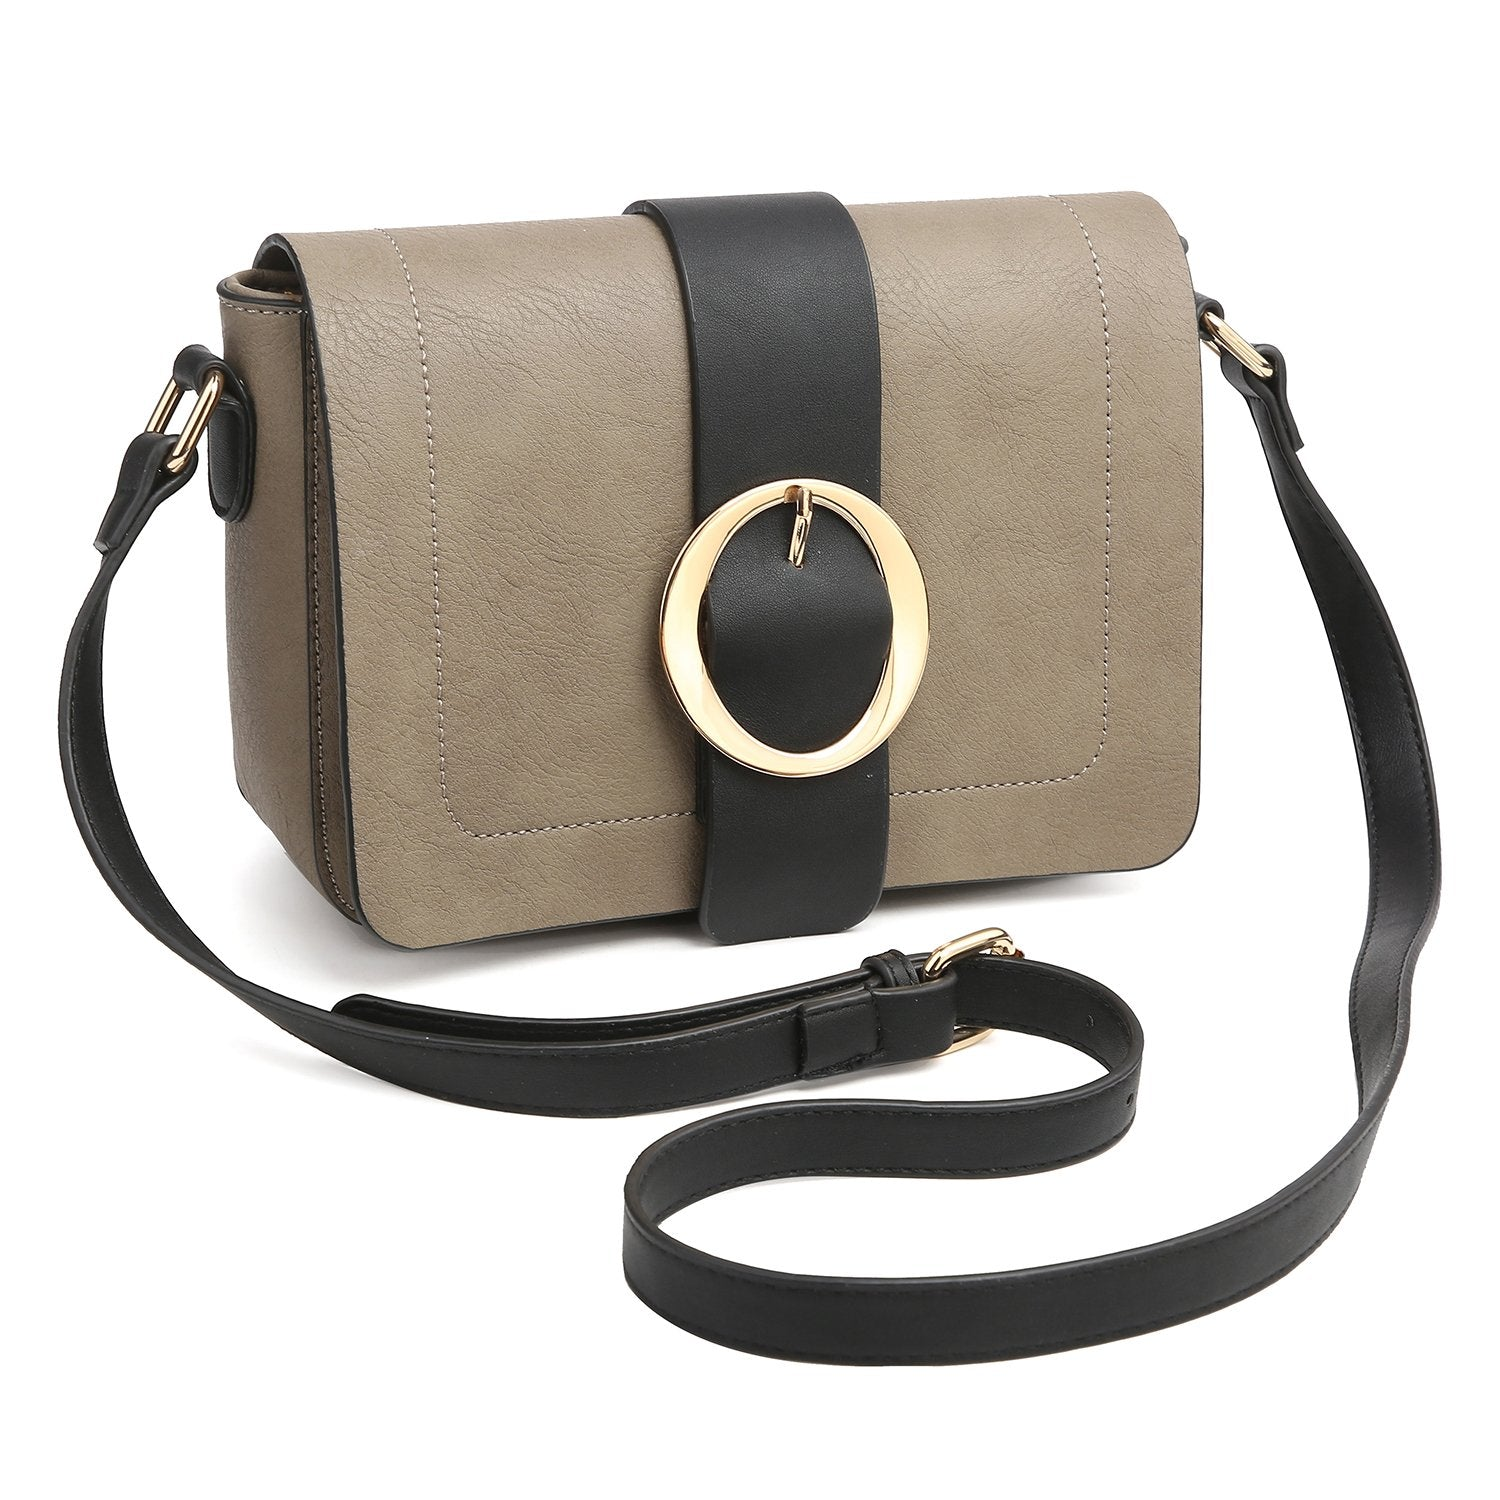 Buckle Gold-Tone Ring Crossbody Bag-Crossbody/Messenger bag-Dasein Bags